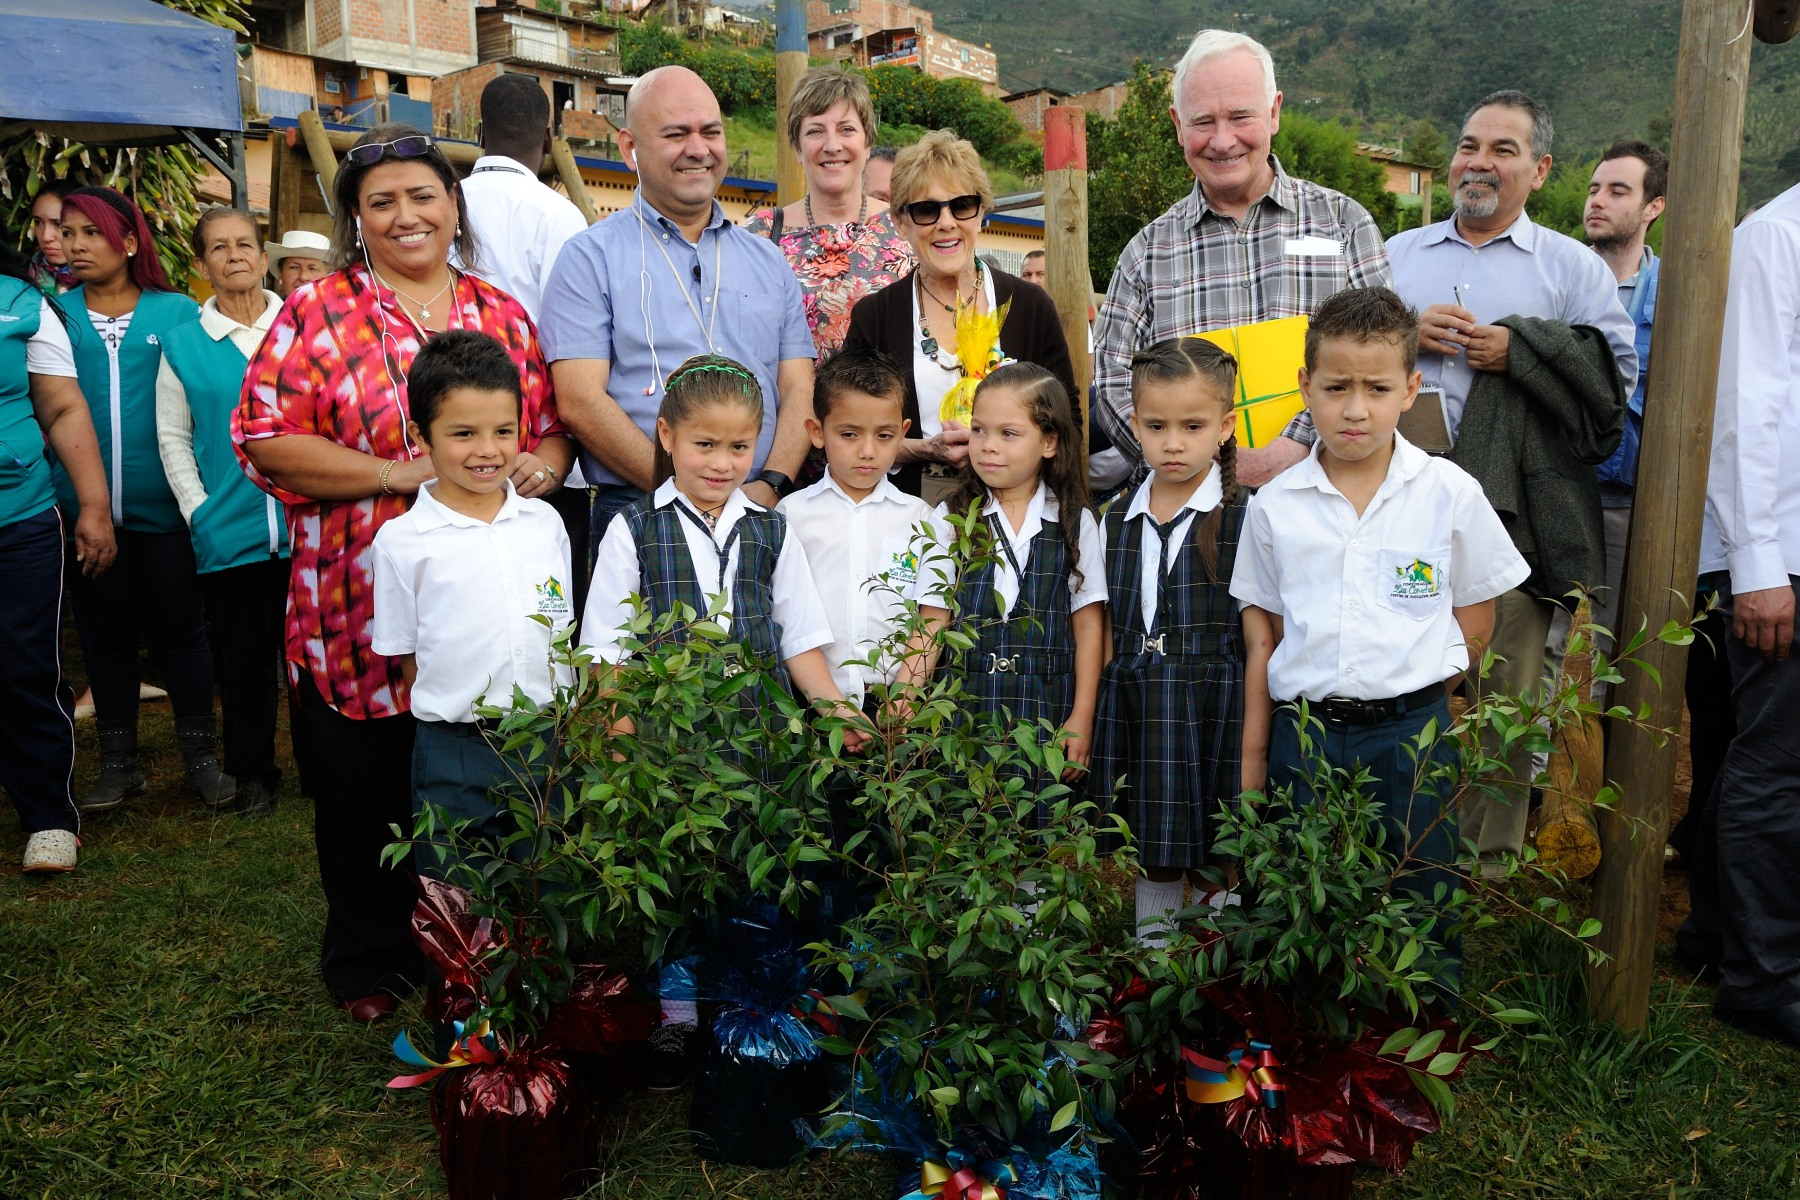 As a token of appreciation, Their Excellencies donated fruit trees to the community.